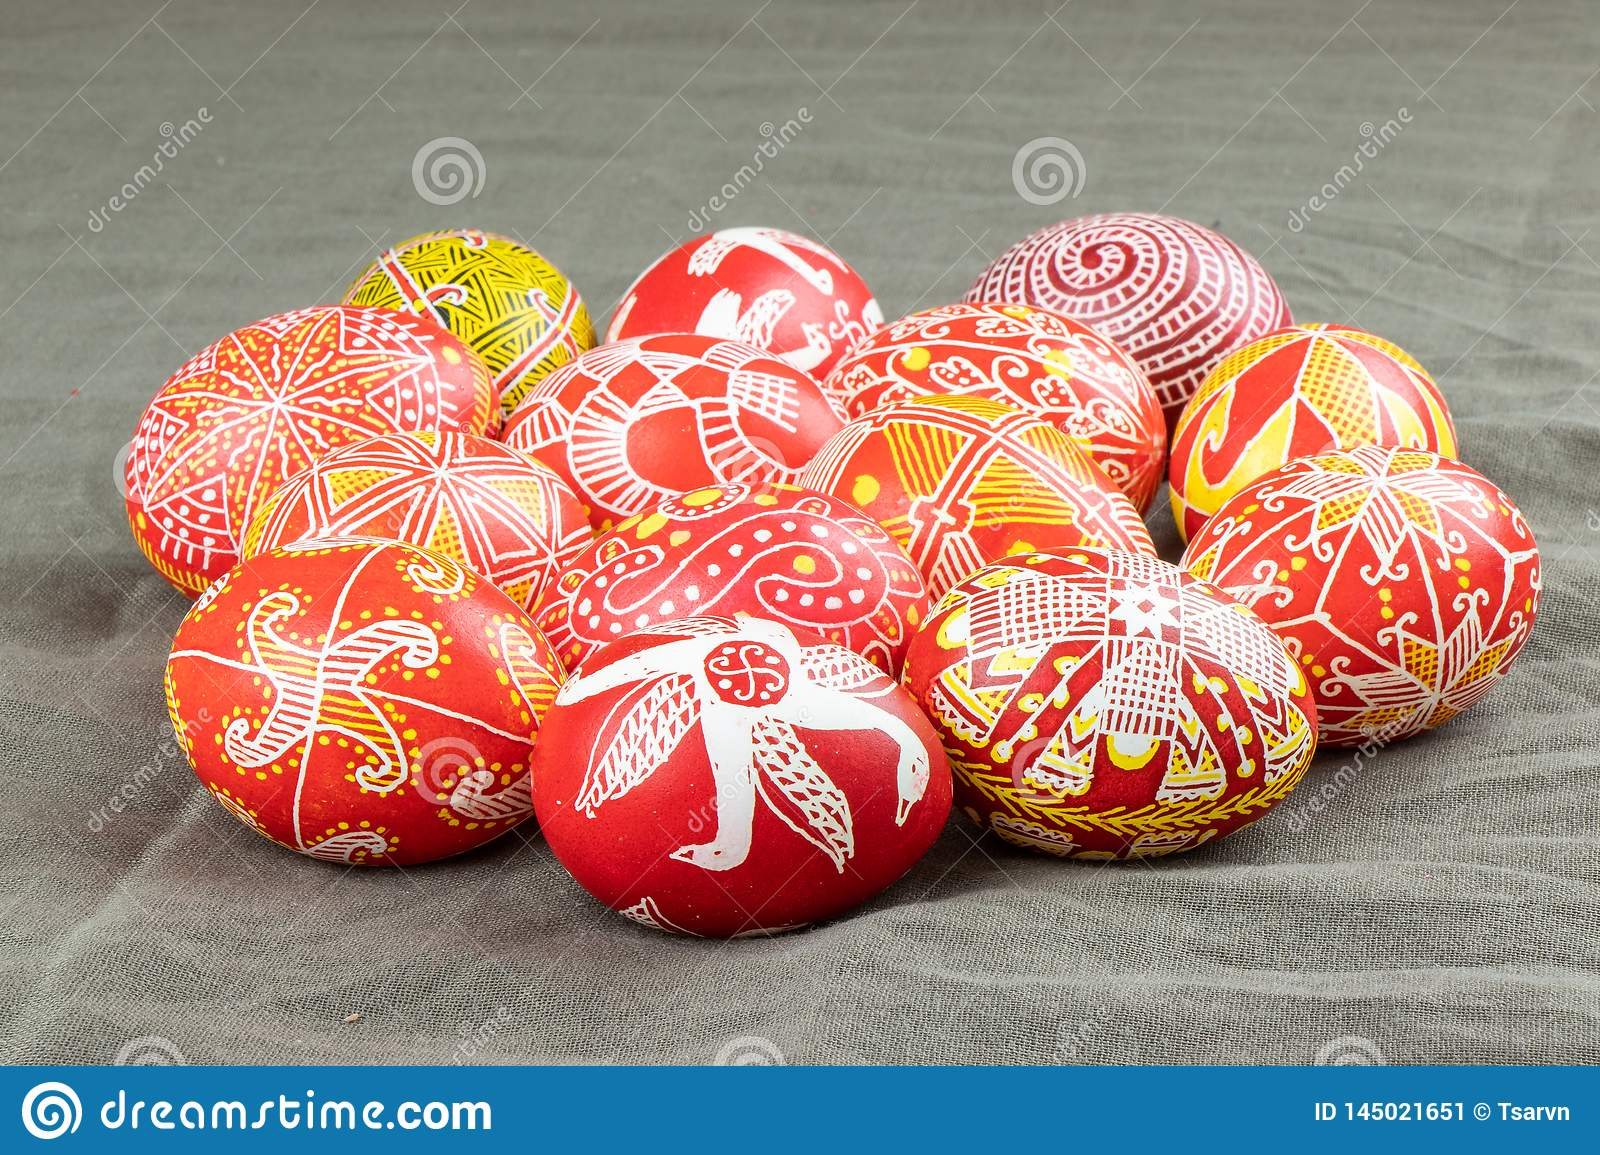 The painted eggs from the collection The Peace